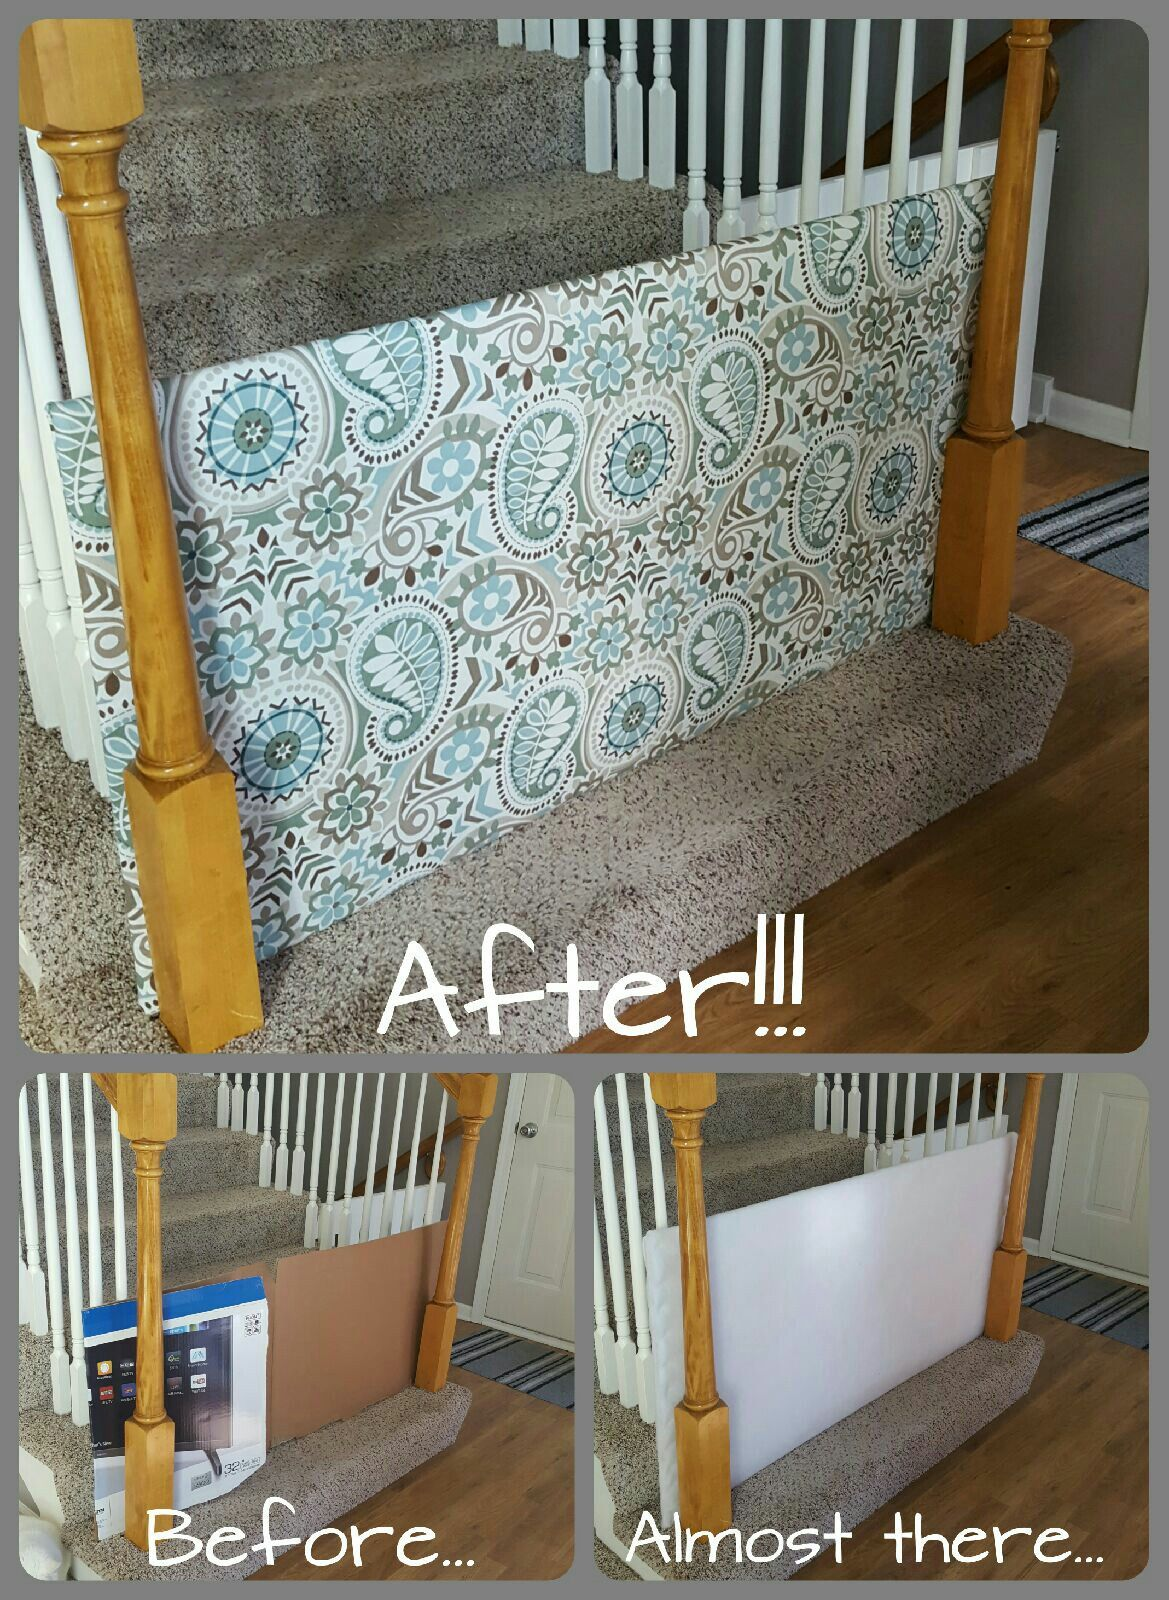 Baby Gate Diy Plywood Covered With Batting And A Cute Fabric And